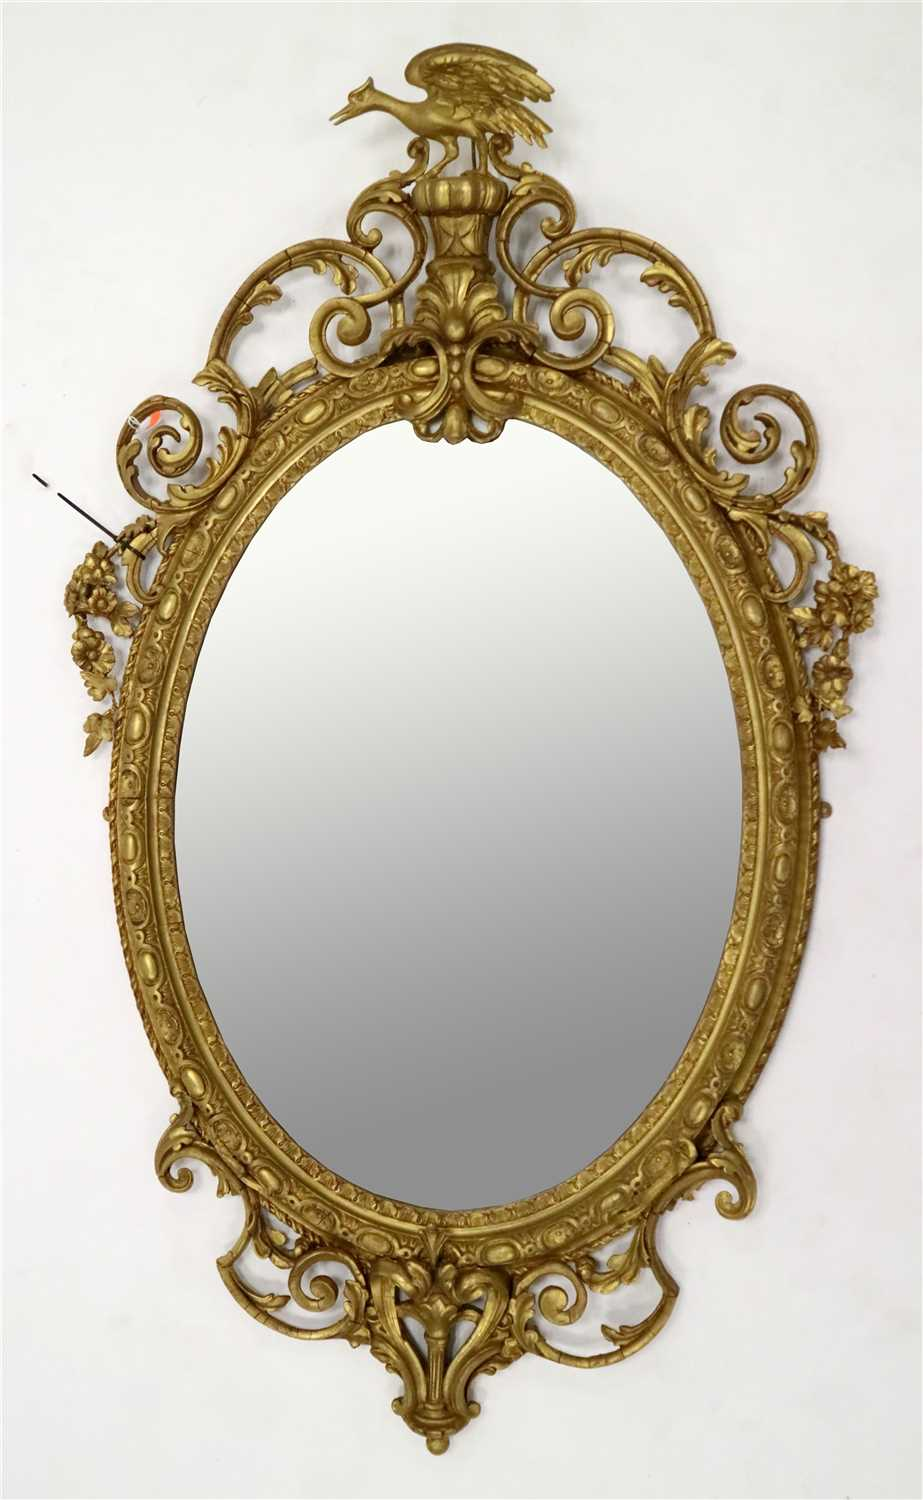 Lot 231-A large 19th century gilt plaster wall mirror in the  Chinese Chippendale manner